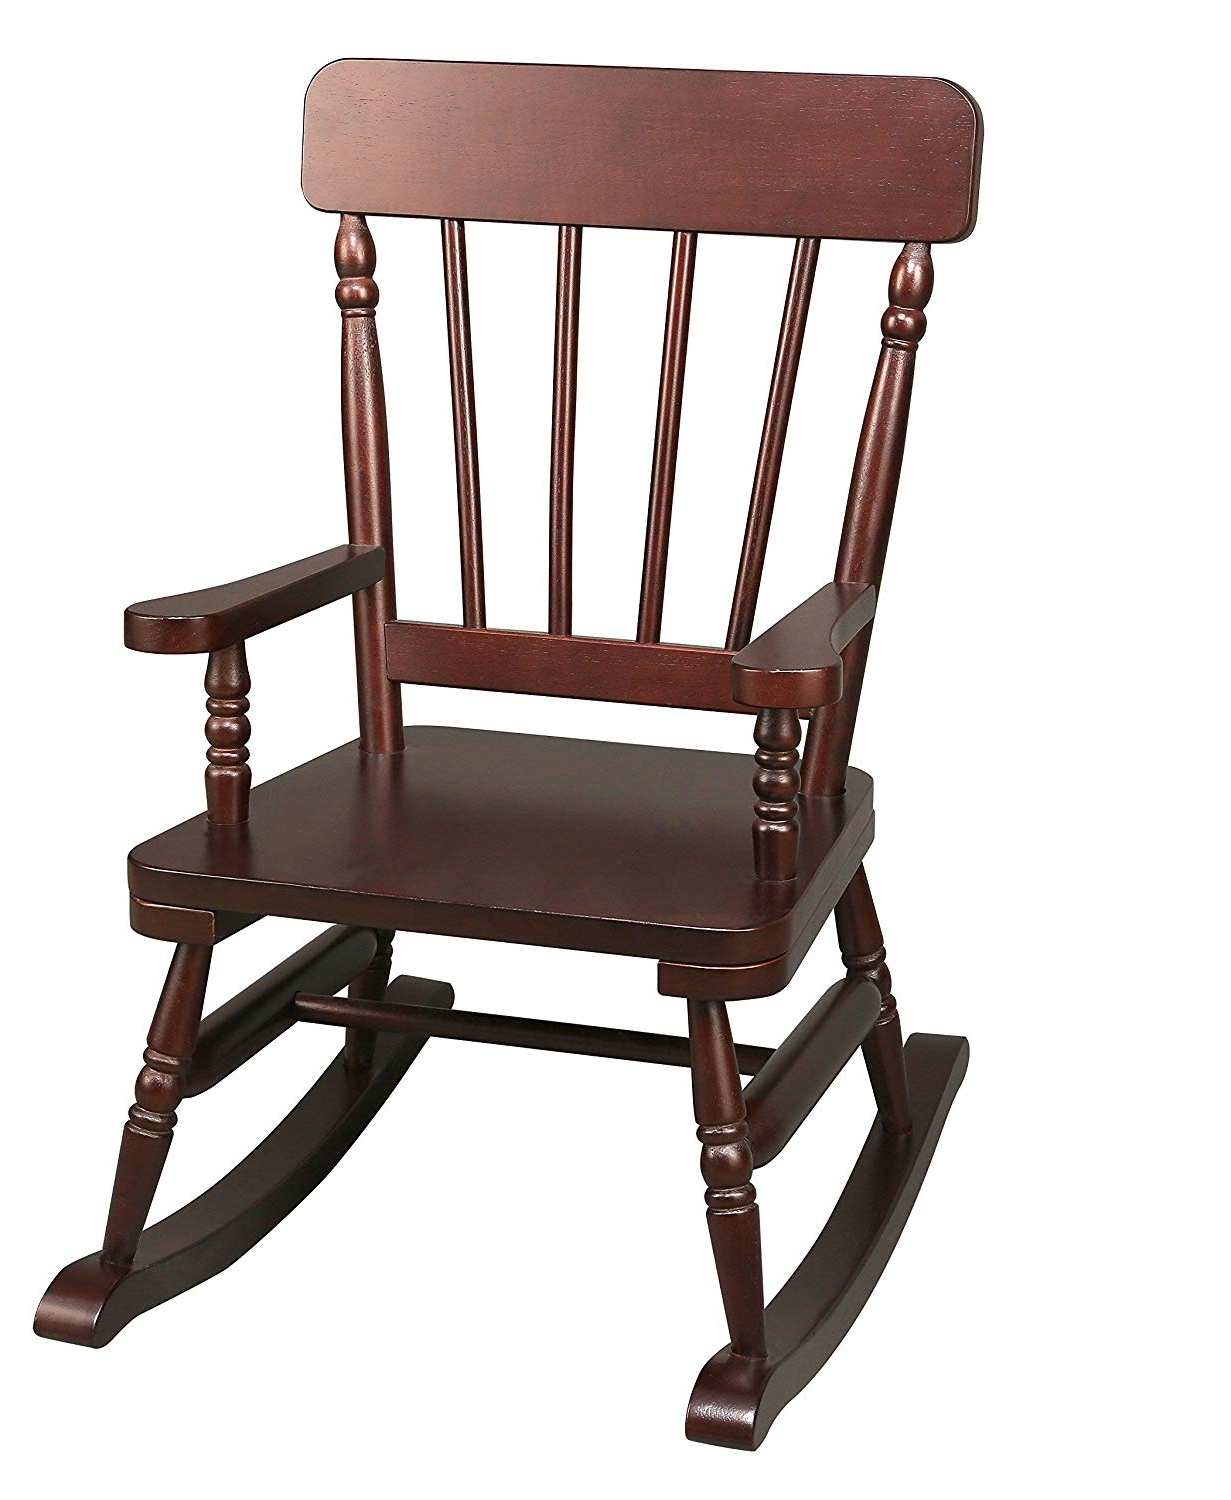 Most Current Old Fashioned Rocking Chairs With Regard To Amazon: Wildkin Emerson Espresso Rocking Chair: Toys & Games (View 4 of 15)